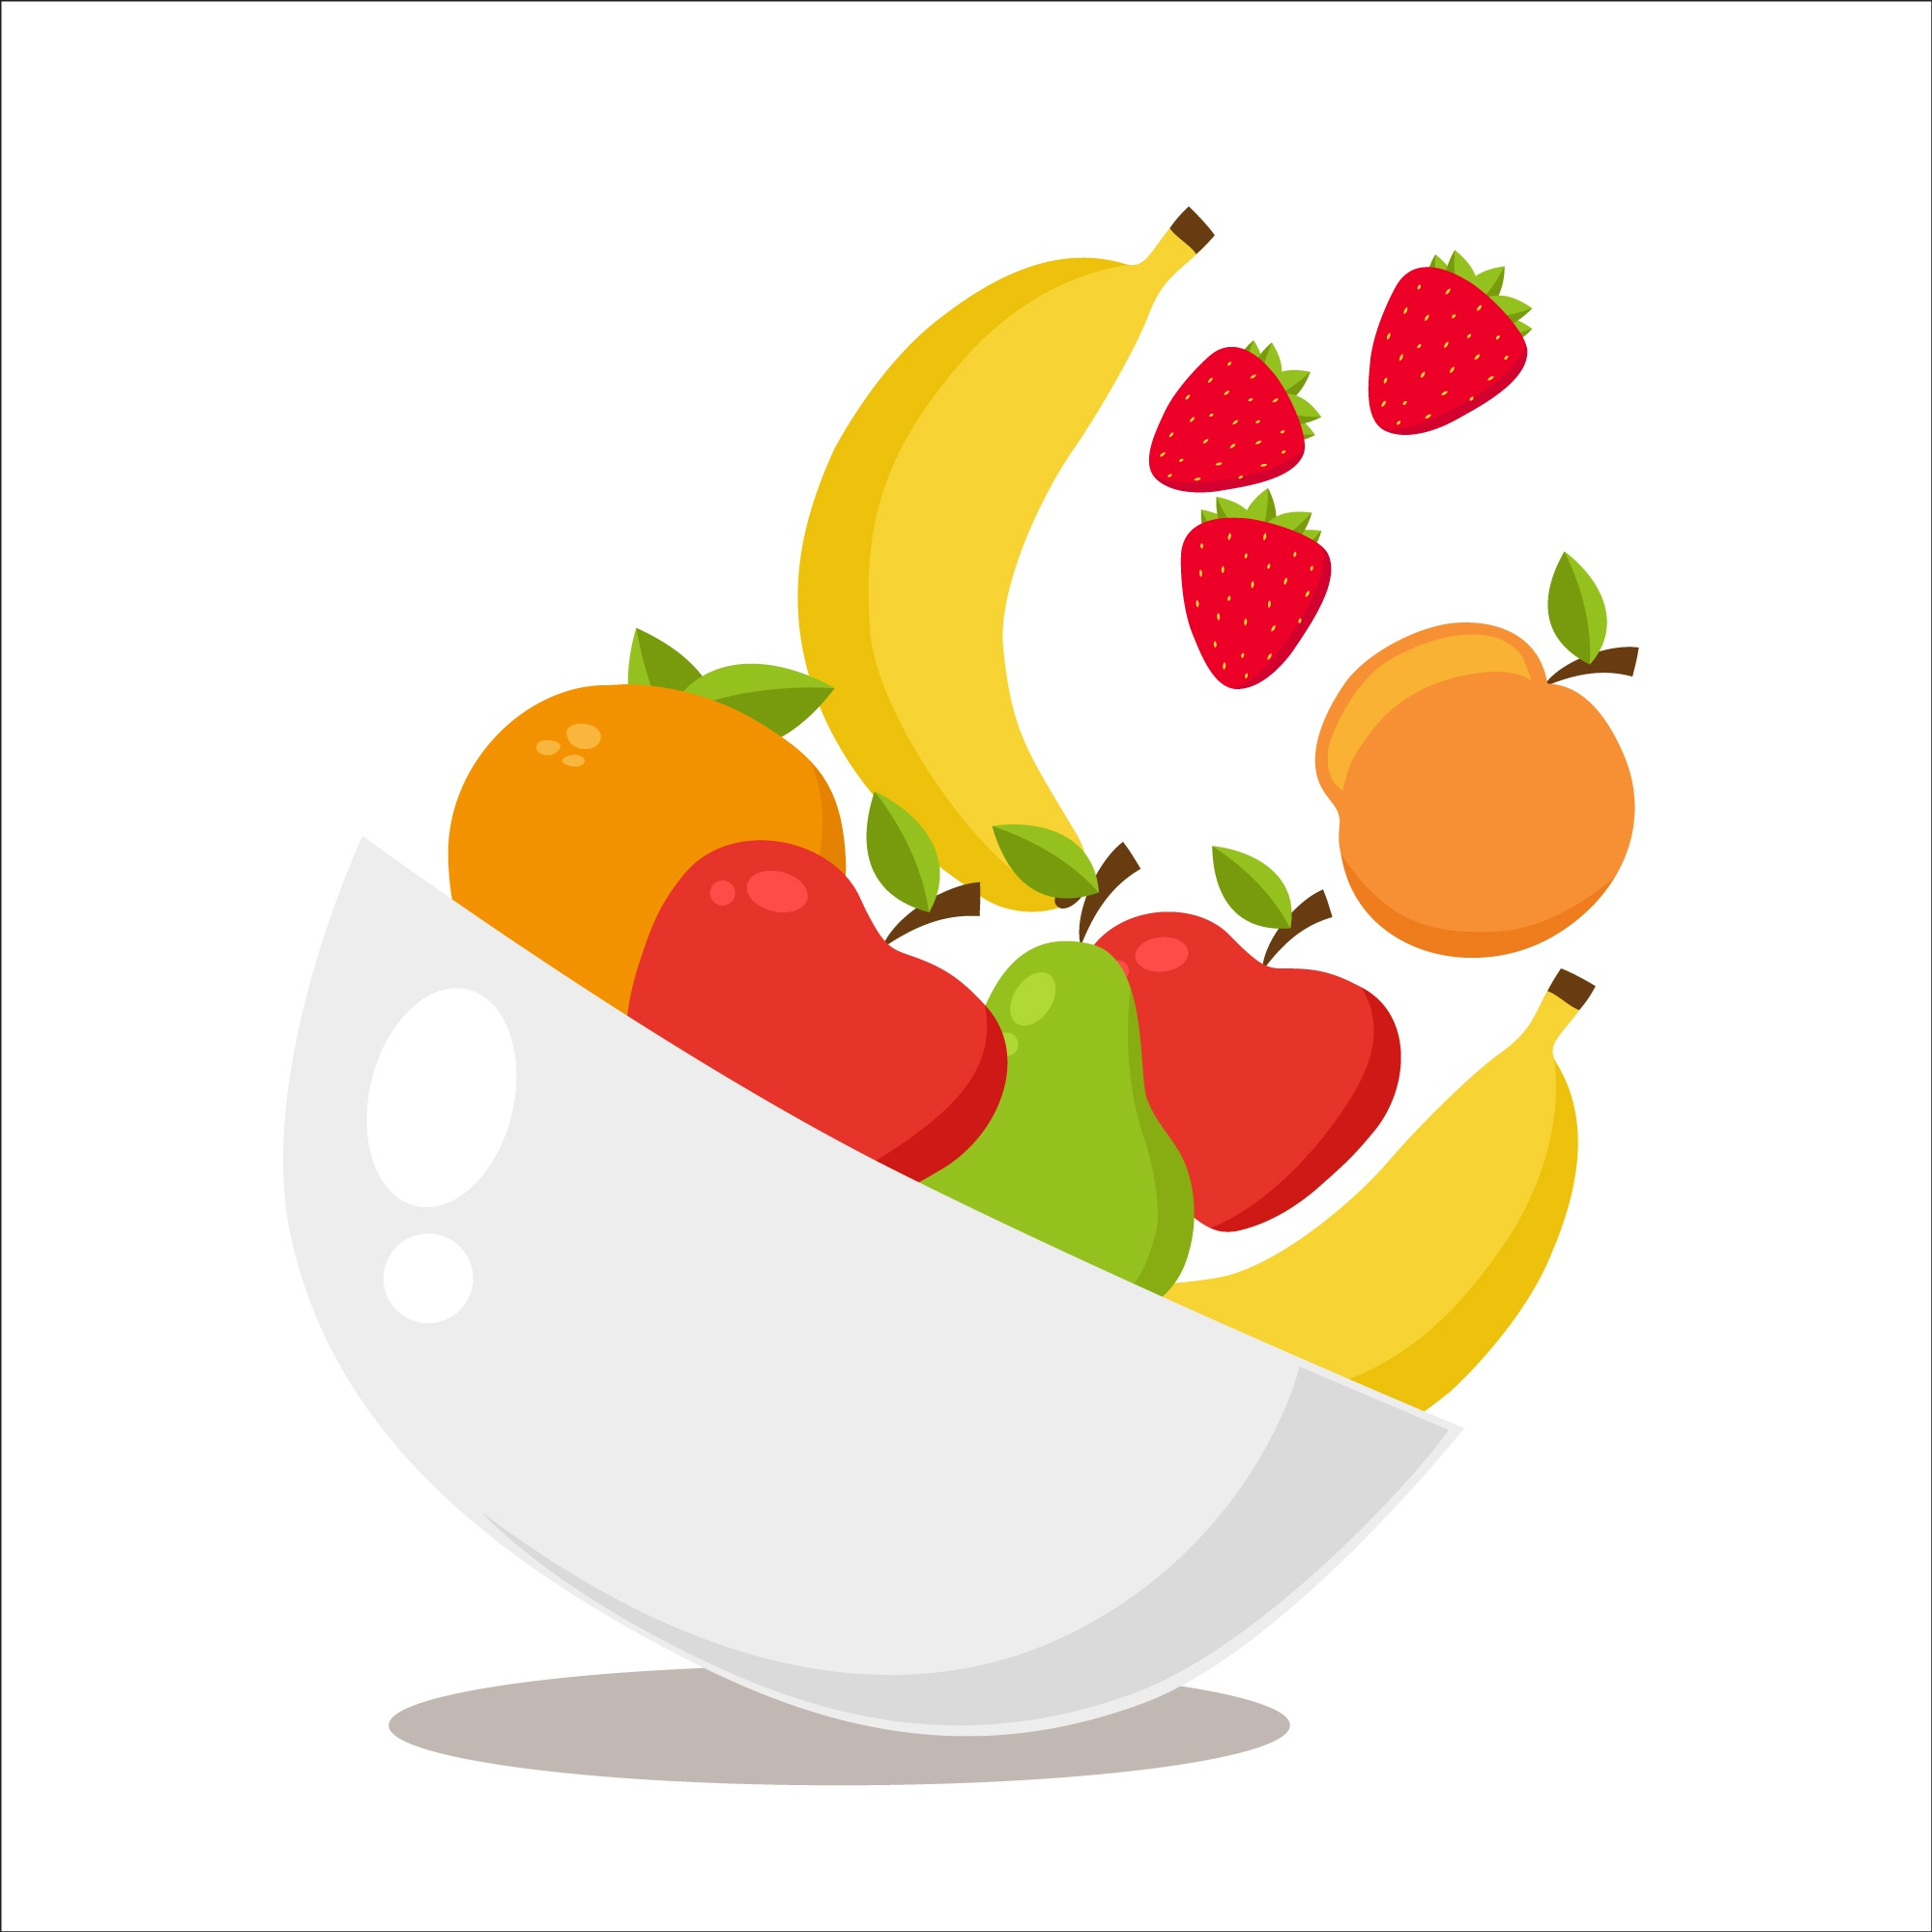 Fruit background design